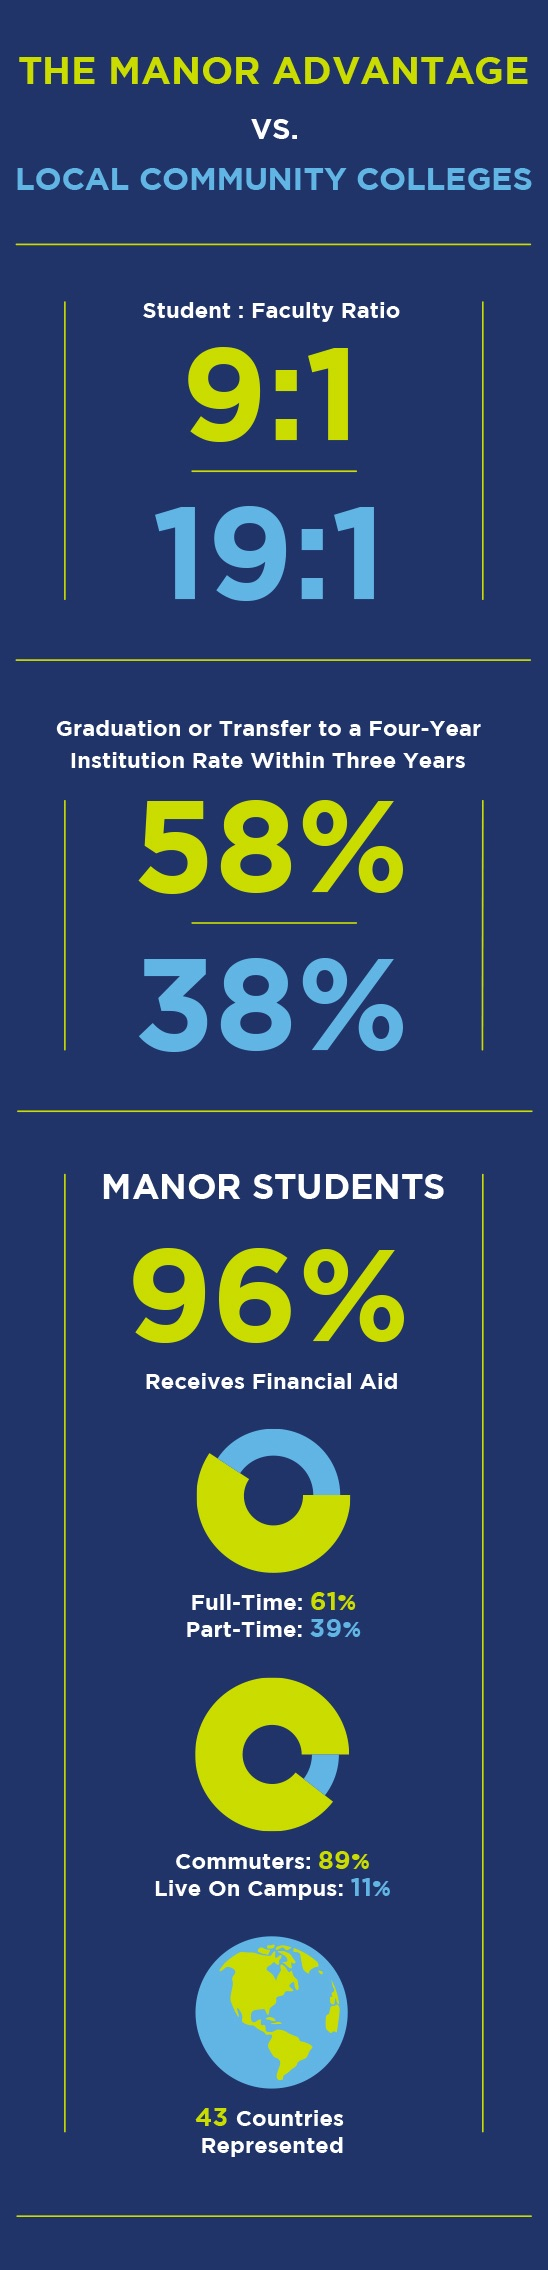 Manor College is a two-year private college in Pennsylvania that has many advantages